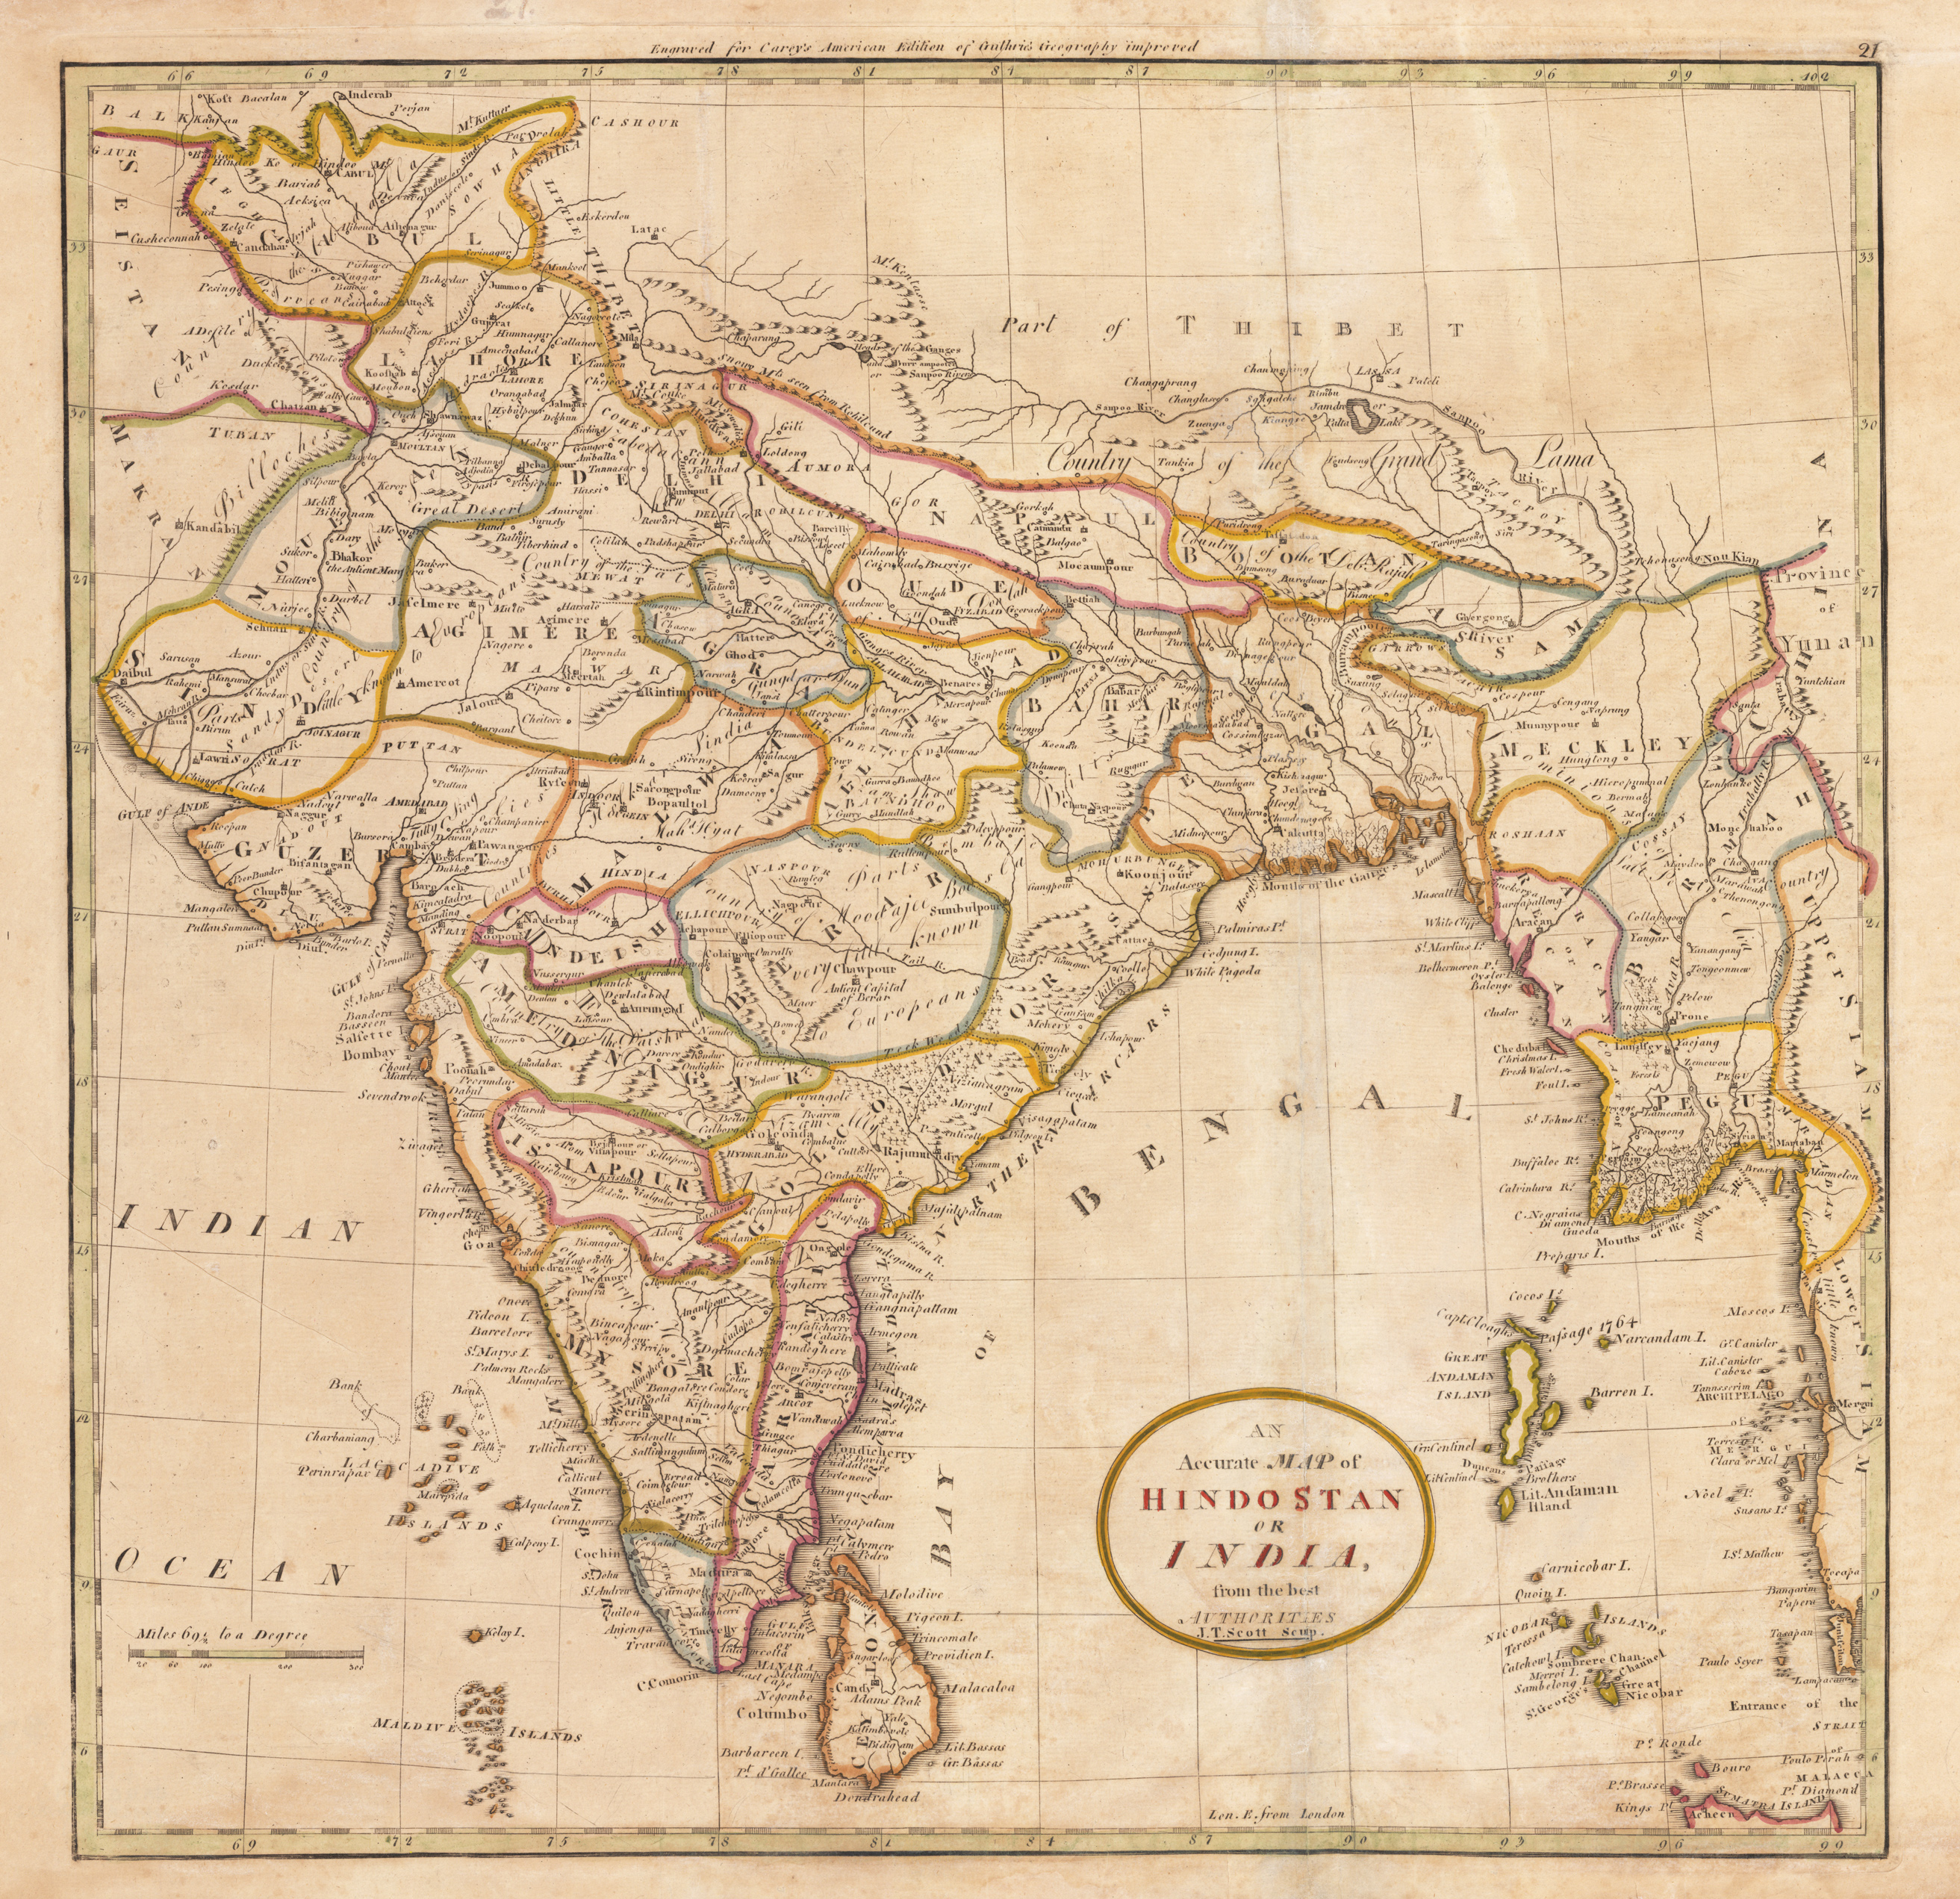 1800 An Accurate Map of Hindostan or India from the best Authorities